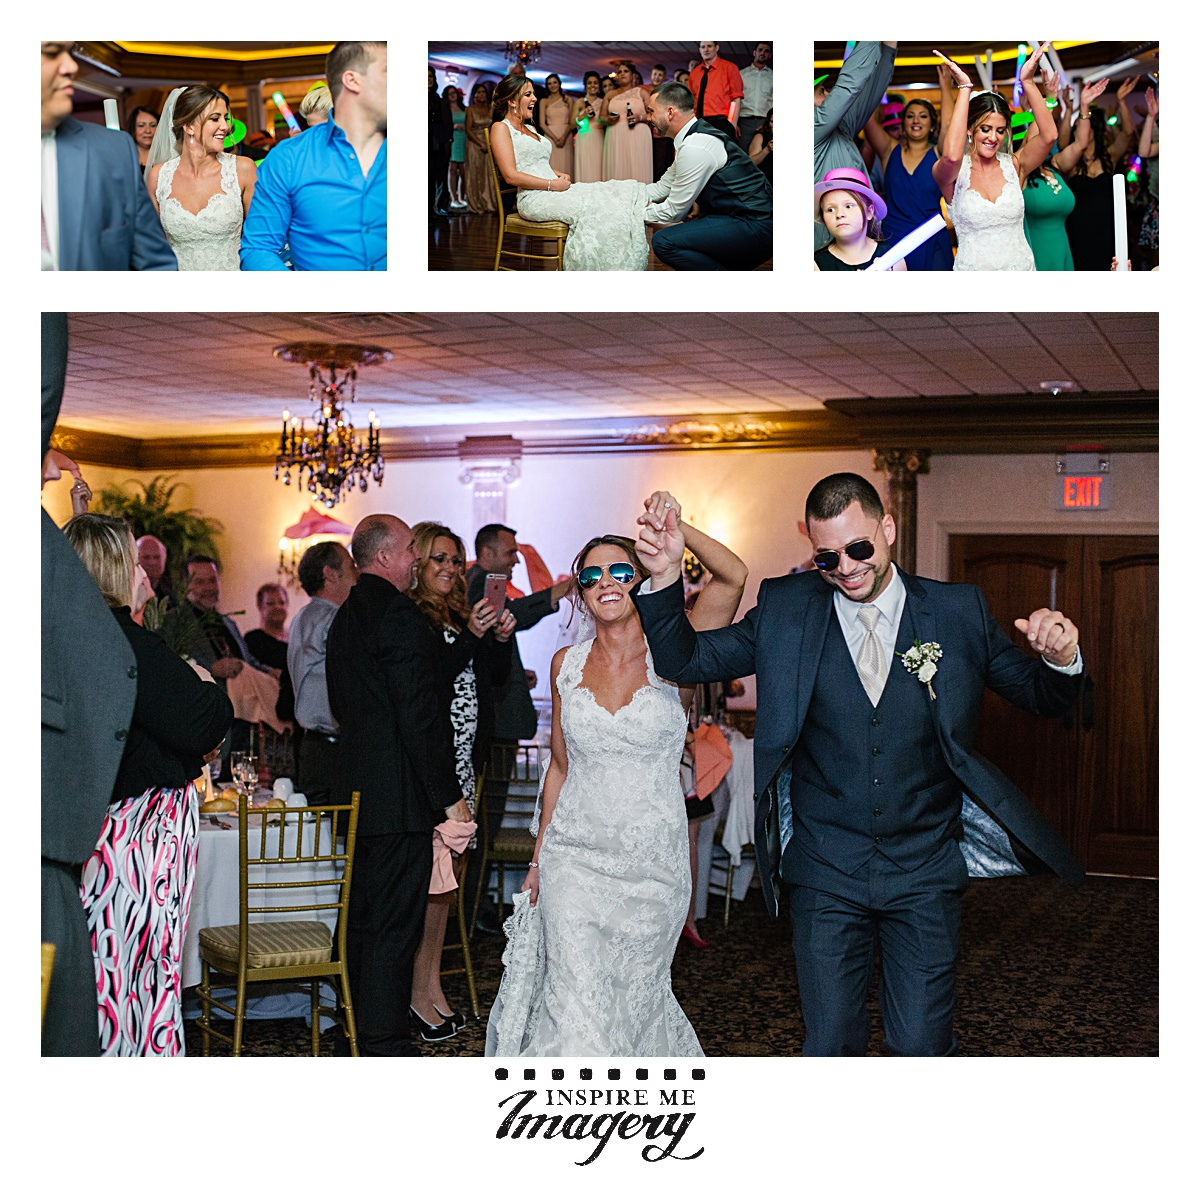 Loved that the bride and groom entered the reception rocking these sweet sunglasses.